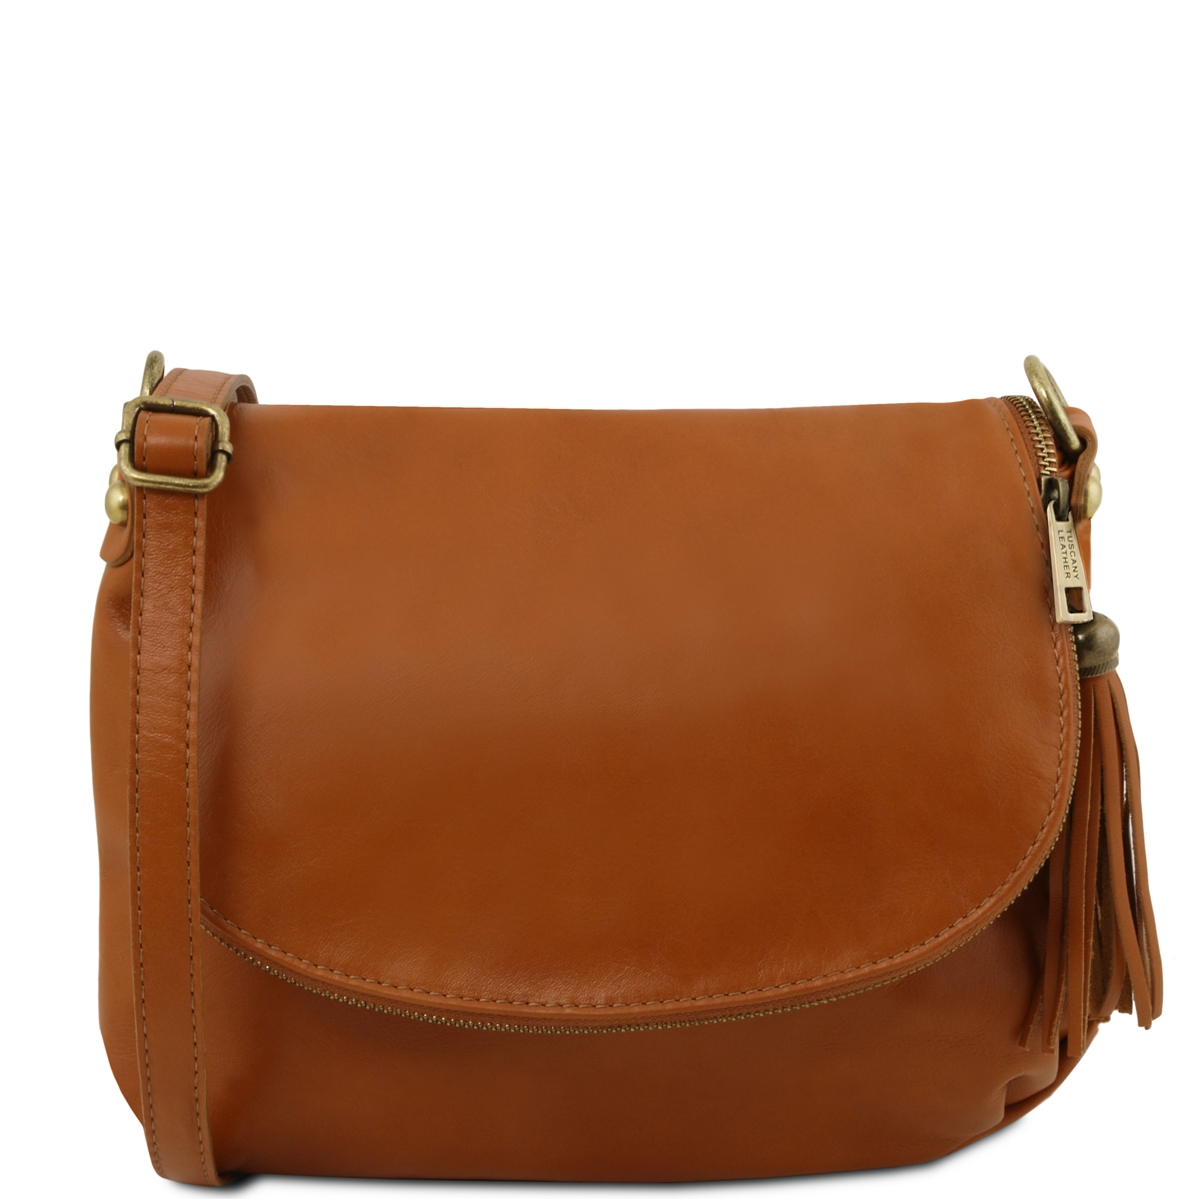 Brown Leather Handbags - Shop Online | Free Delivery to Australia